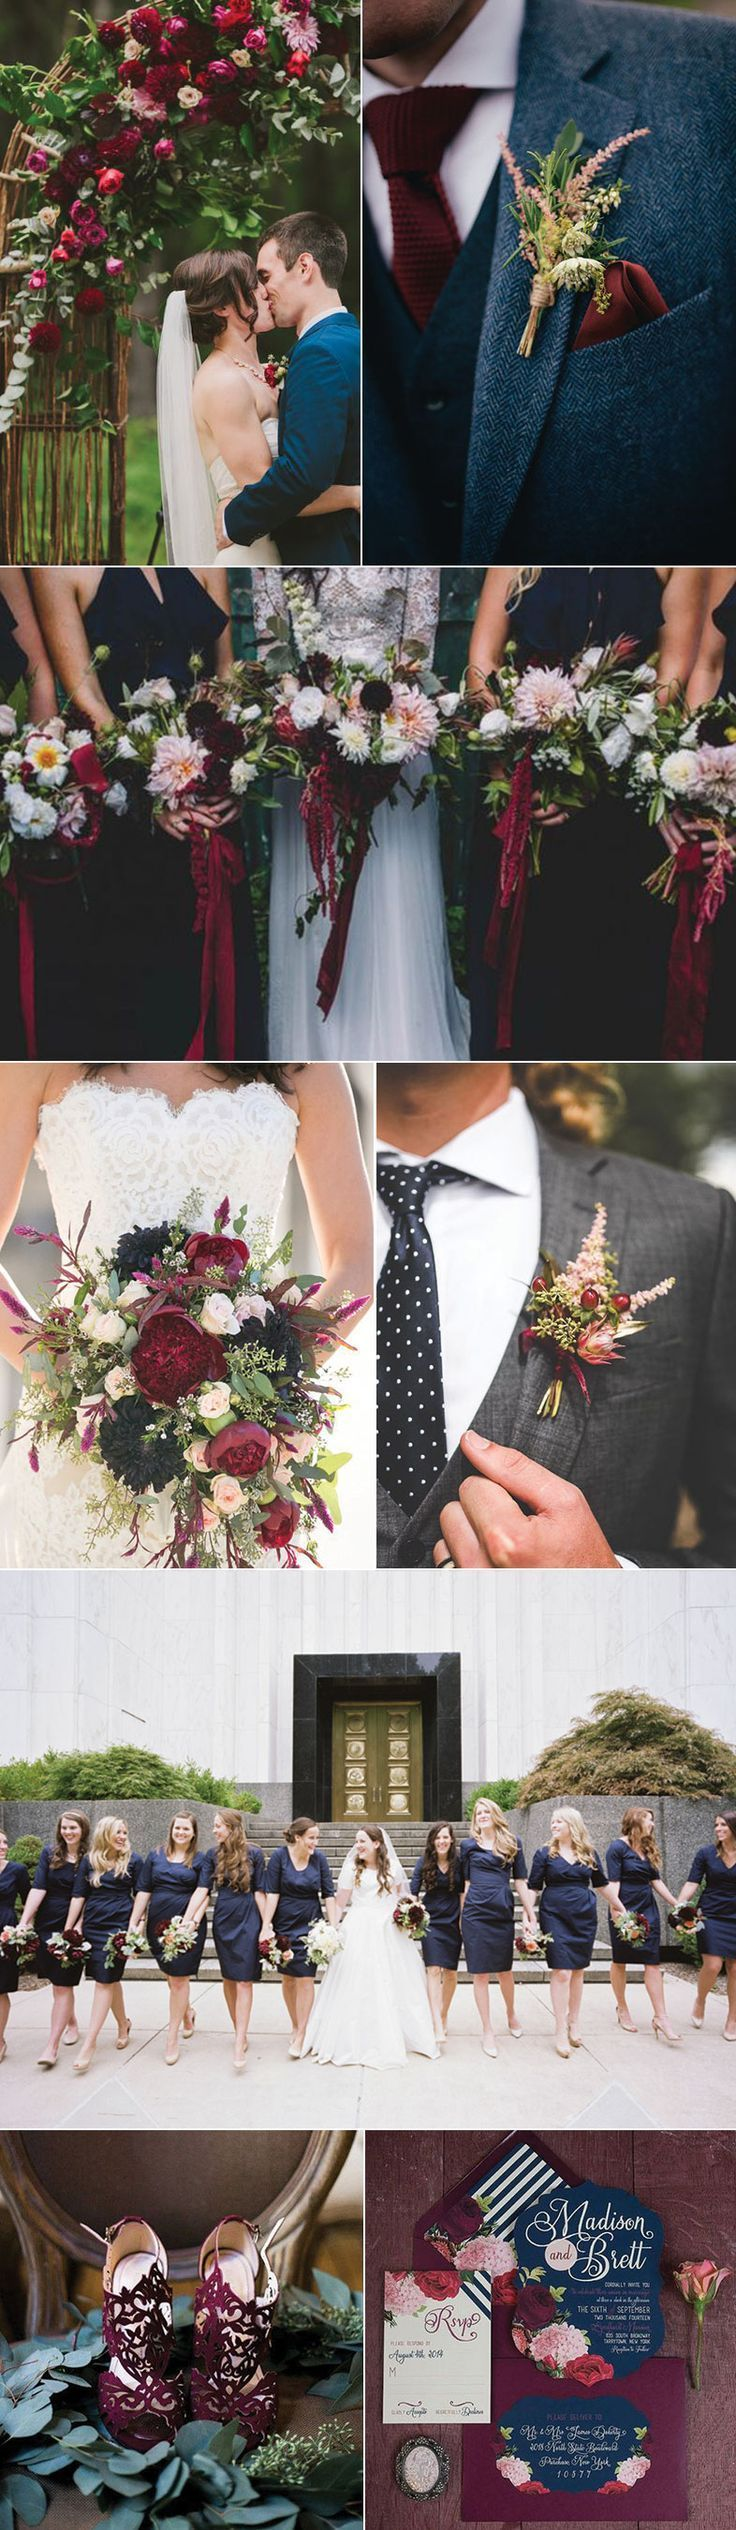 26 best Burgundy and Navy Wedding Inspirations images on